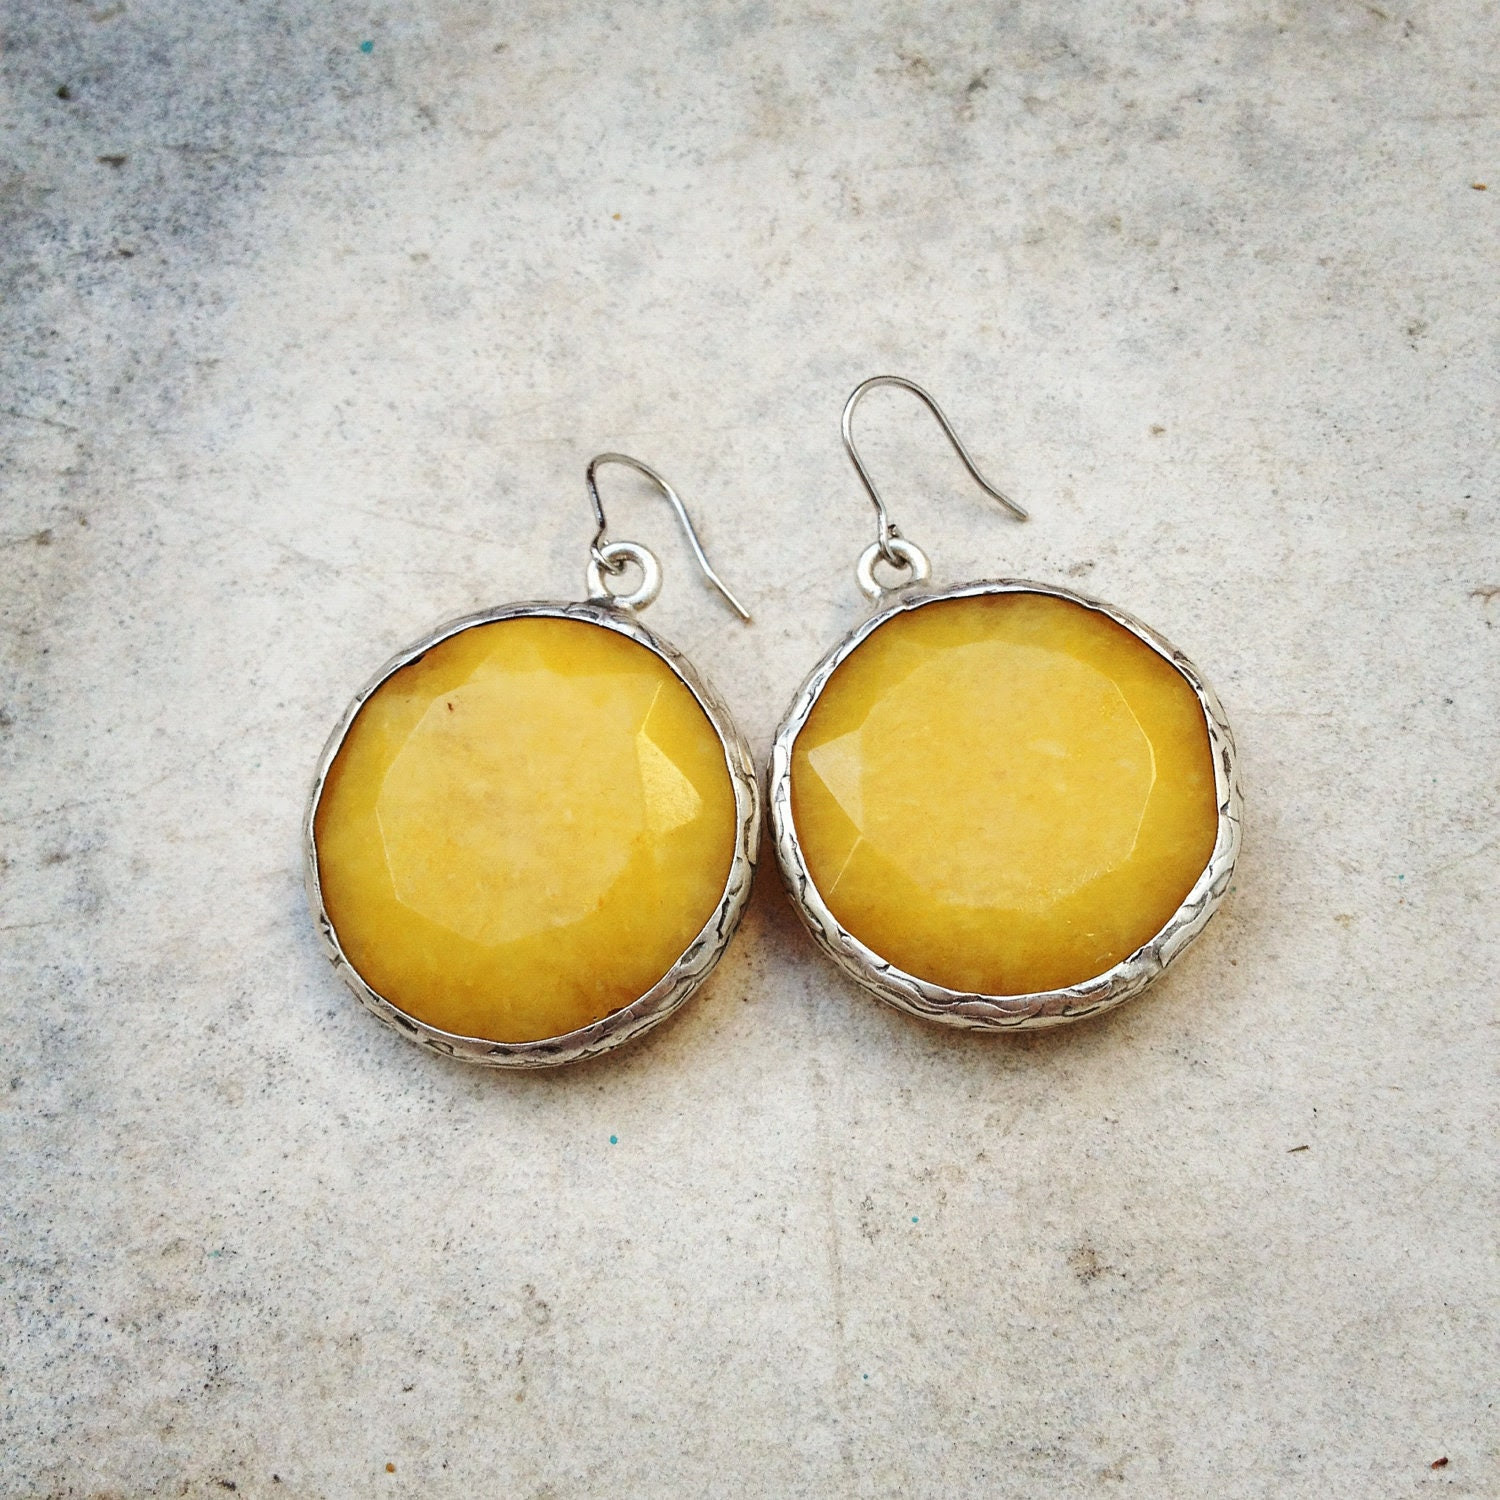 unique statement  earrings gemstone fashion large bold earrings  sunshine yellow stone silver israel jewelry